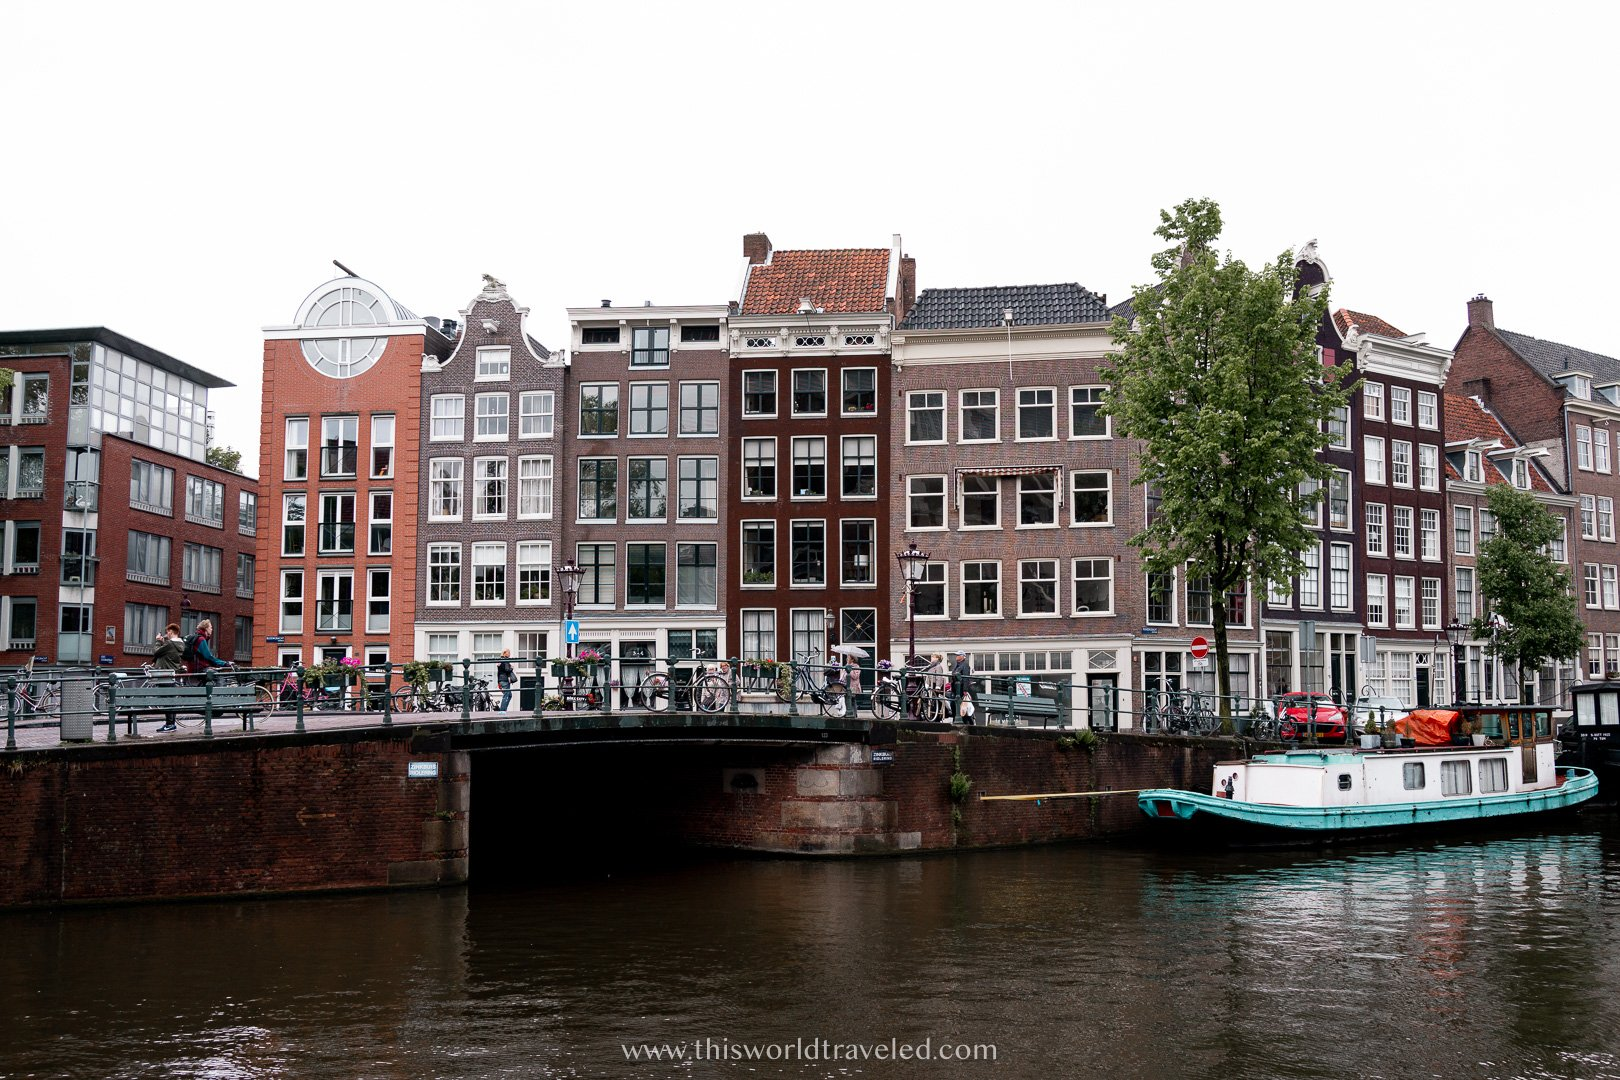 Shopping in Amsterdam is one of the best things to do in the city